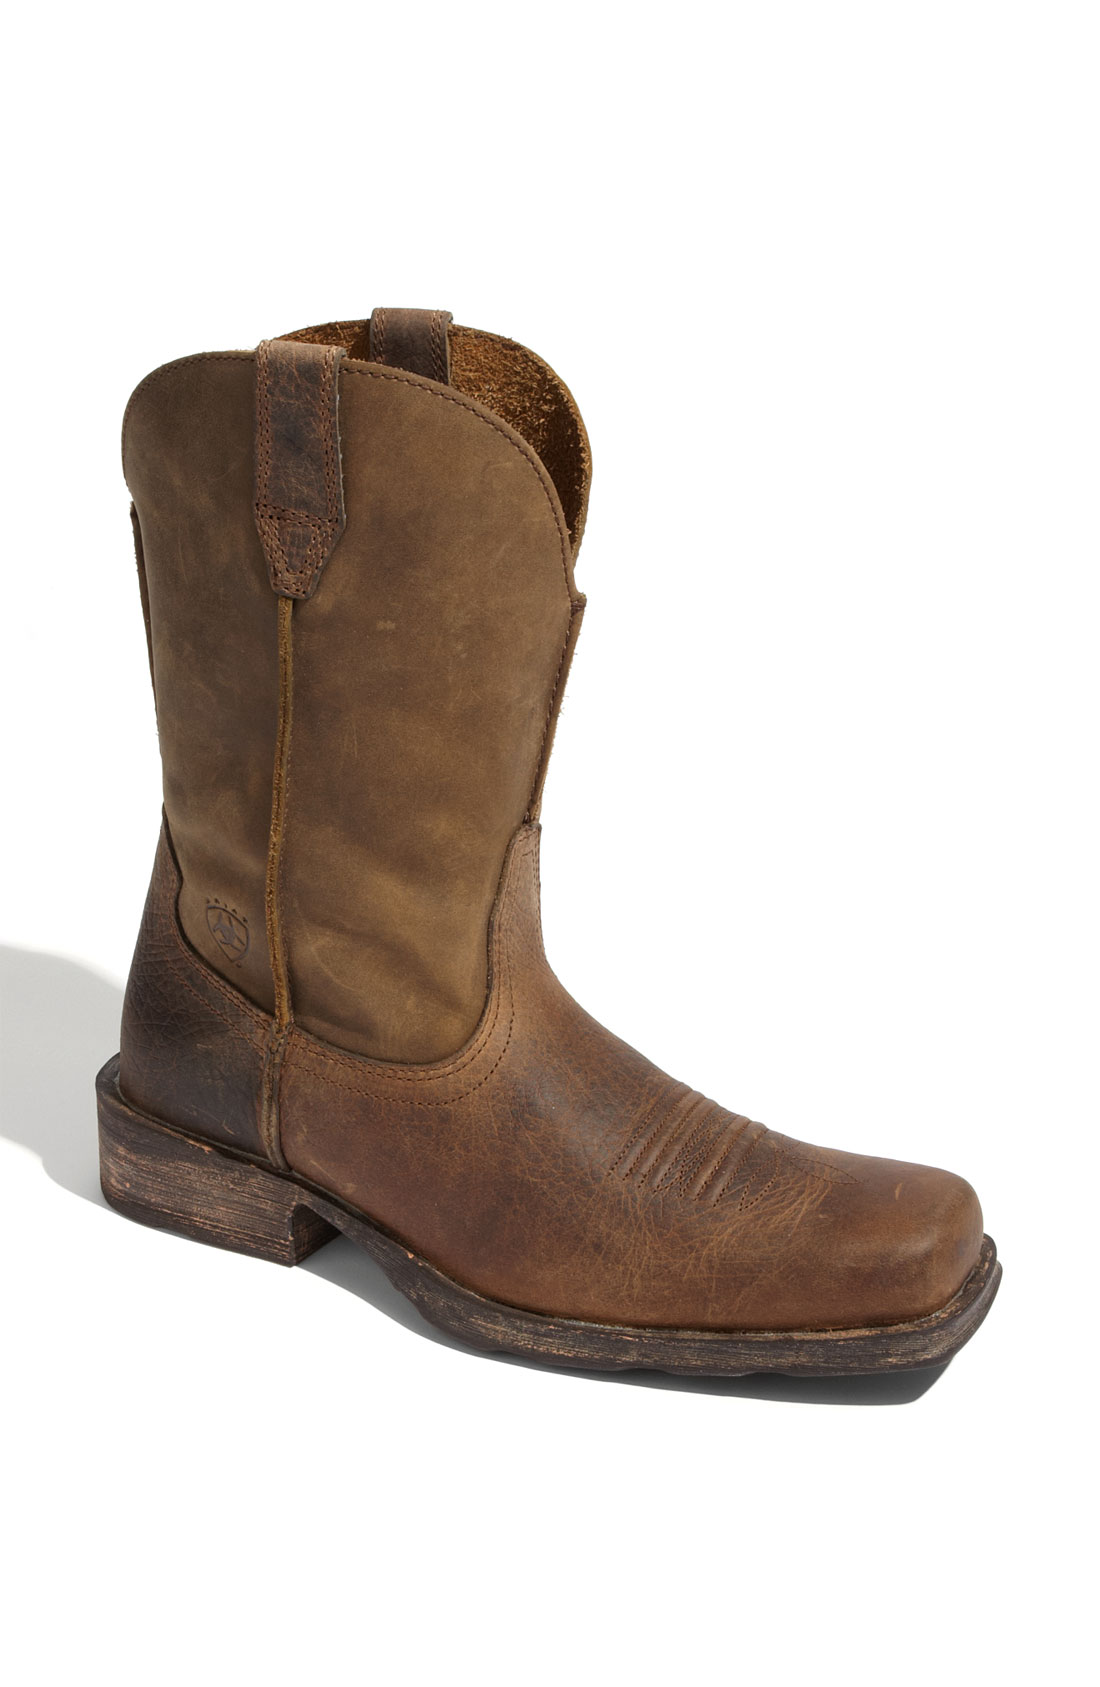 Ariat Boot Dealers onh4BsVb